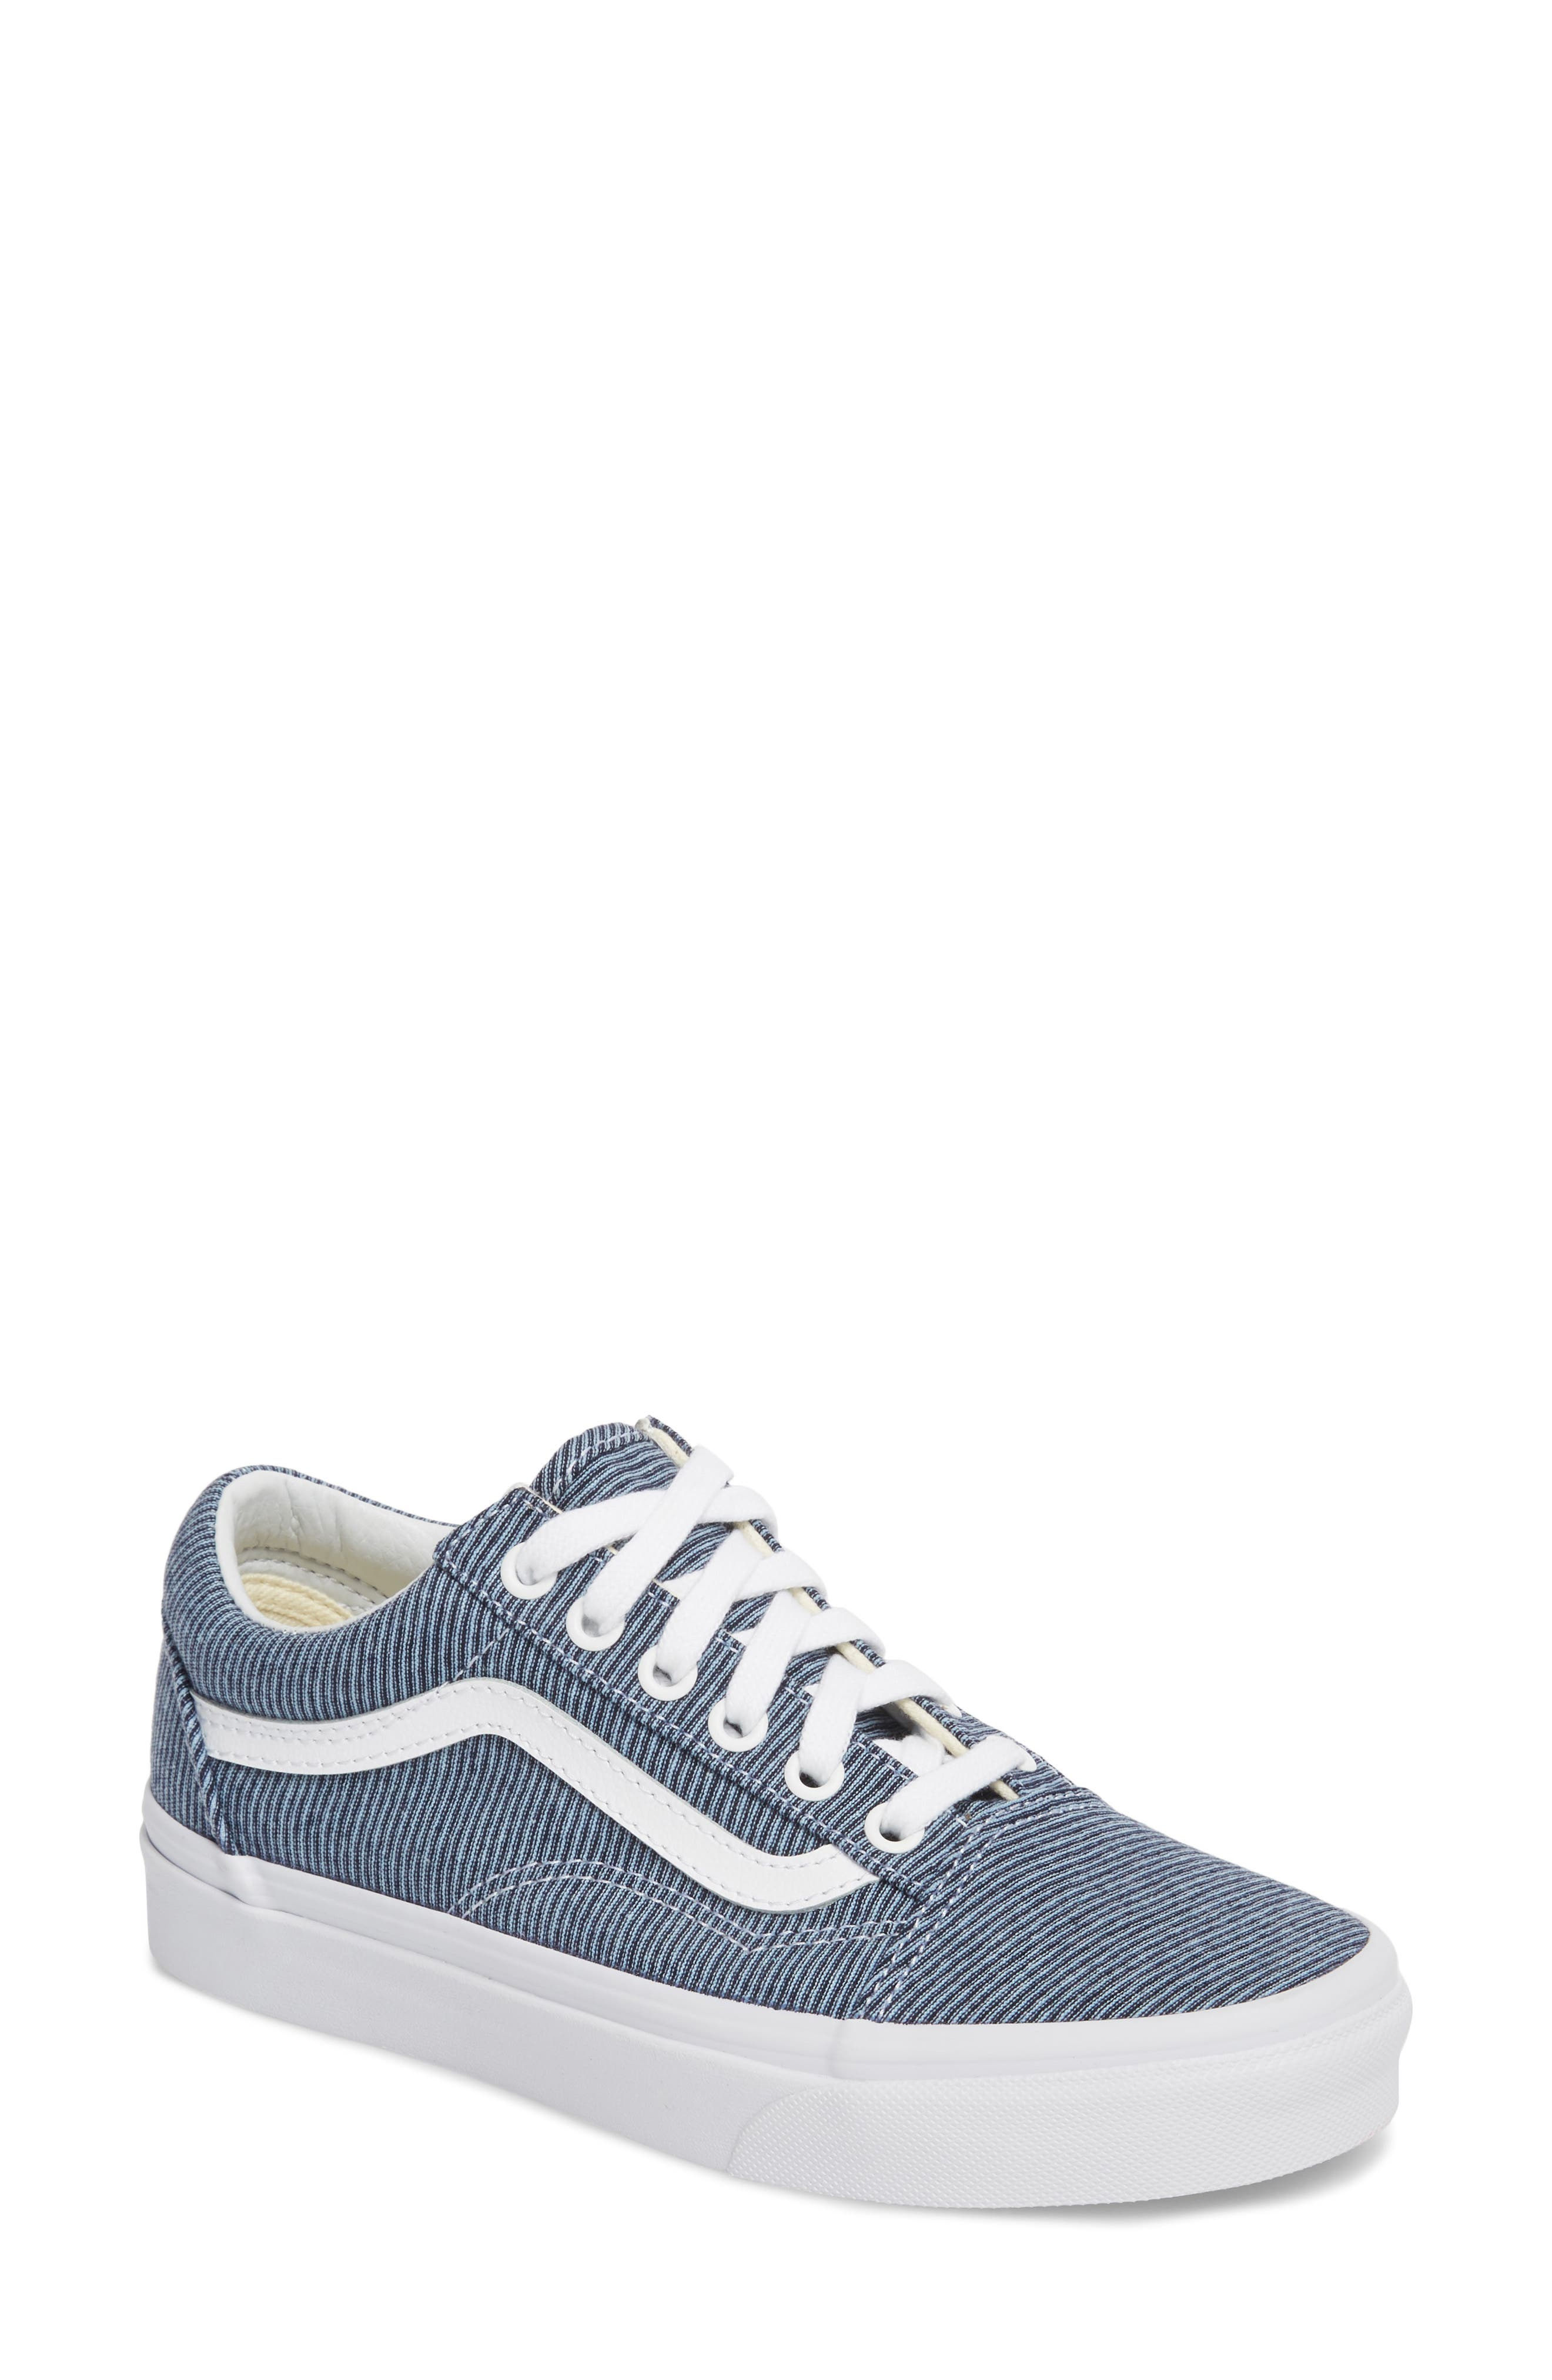 Super Specials Men Suede and Tweed Sneakers Blue - F2T4427725